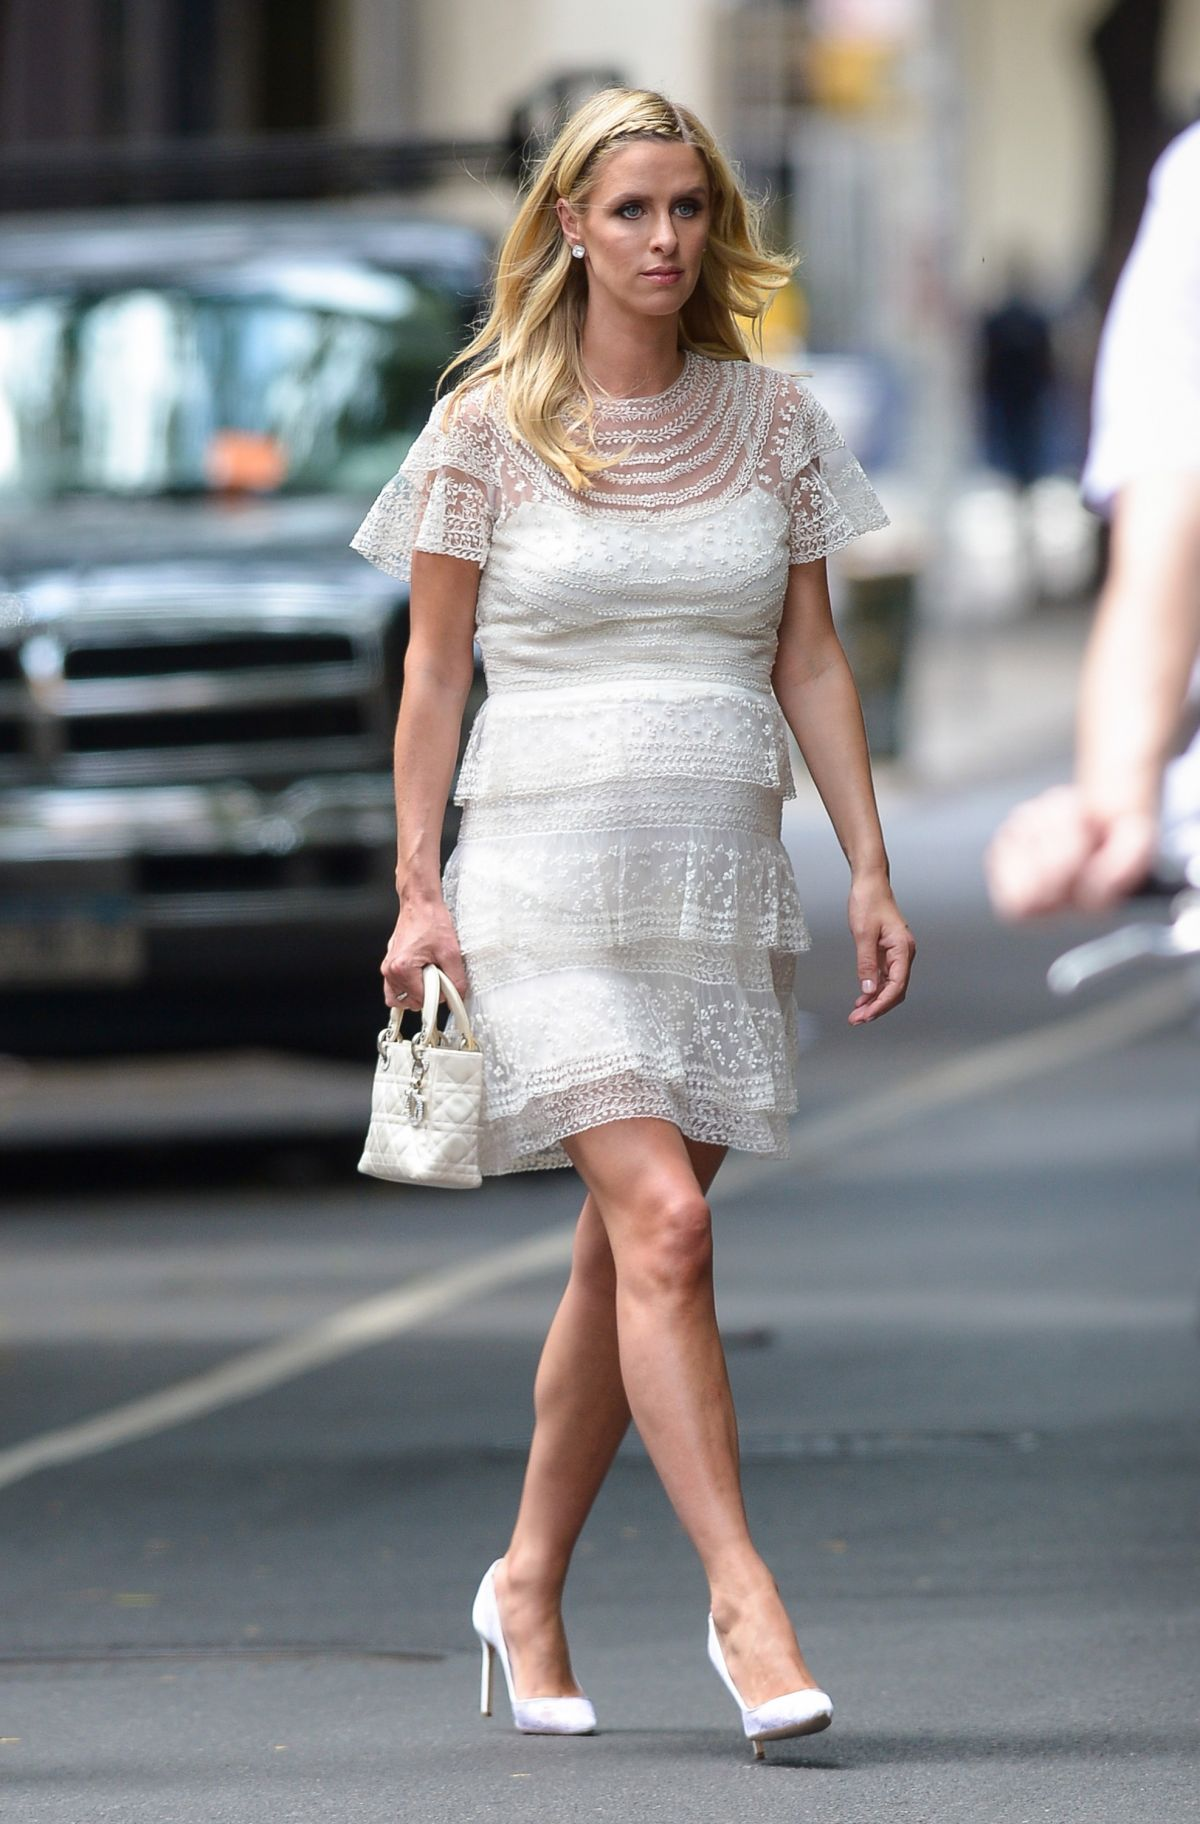 ac5b0ea36 Pregnant NICKY HILTON Out in New York 06 01 2016 - HawtCelebs